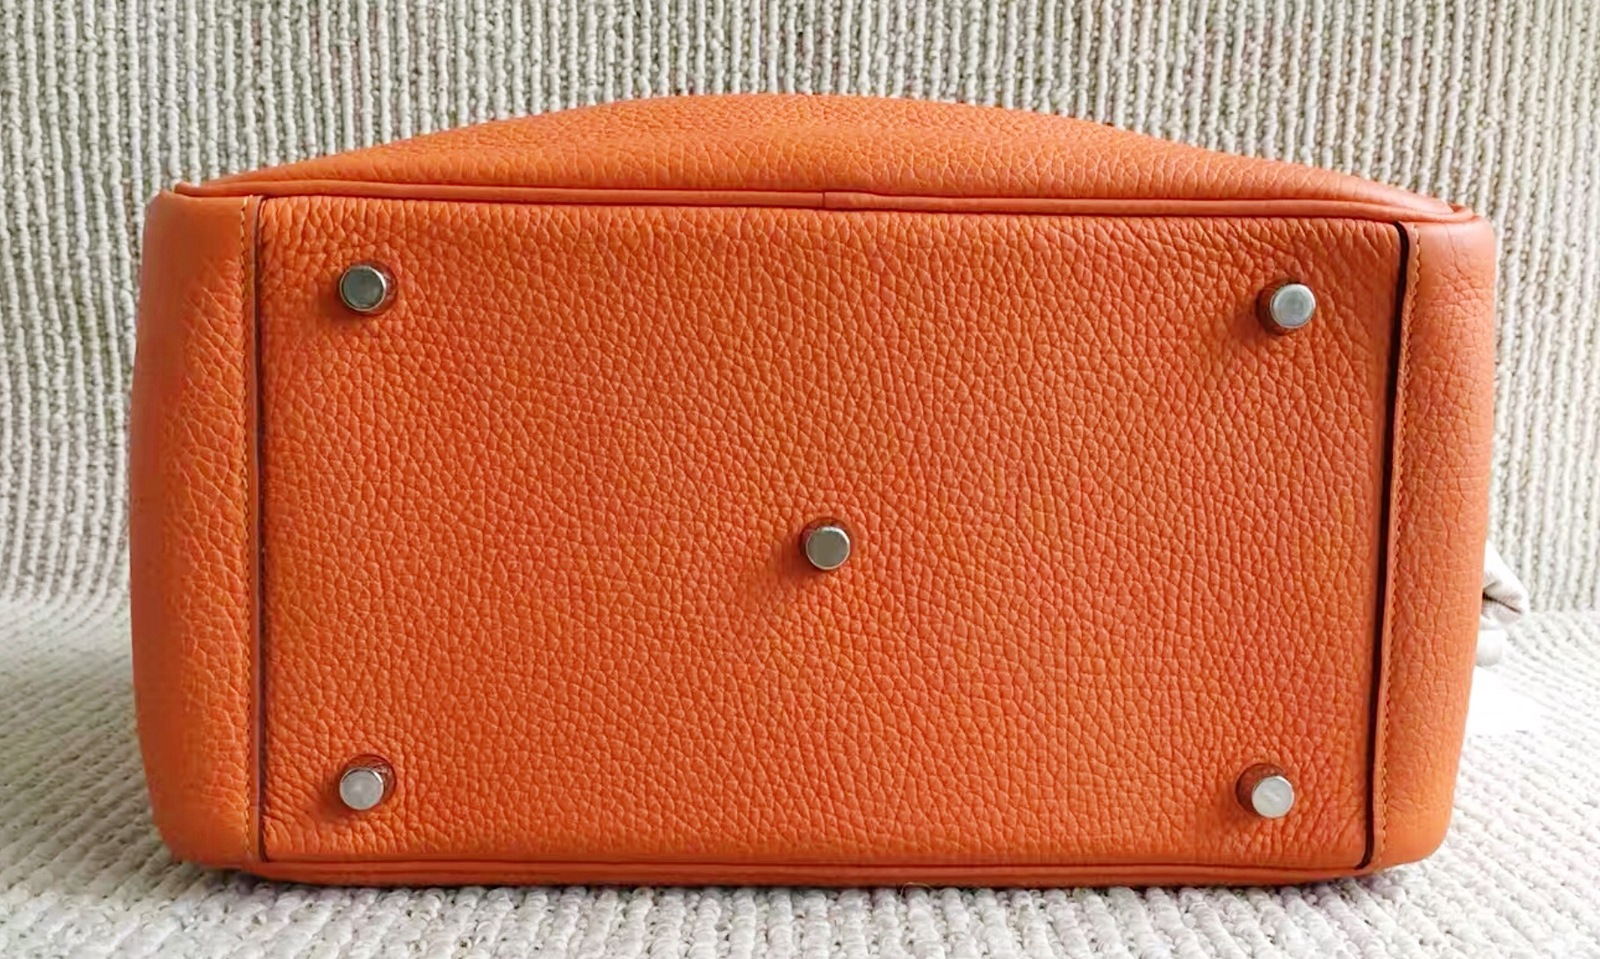 100% Authentic HERMES Taurillon Clemence Lindy 34 ORANGE Shoulder Bag PHW image 8